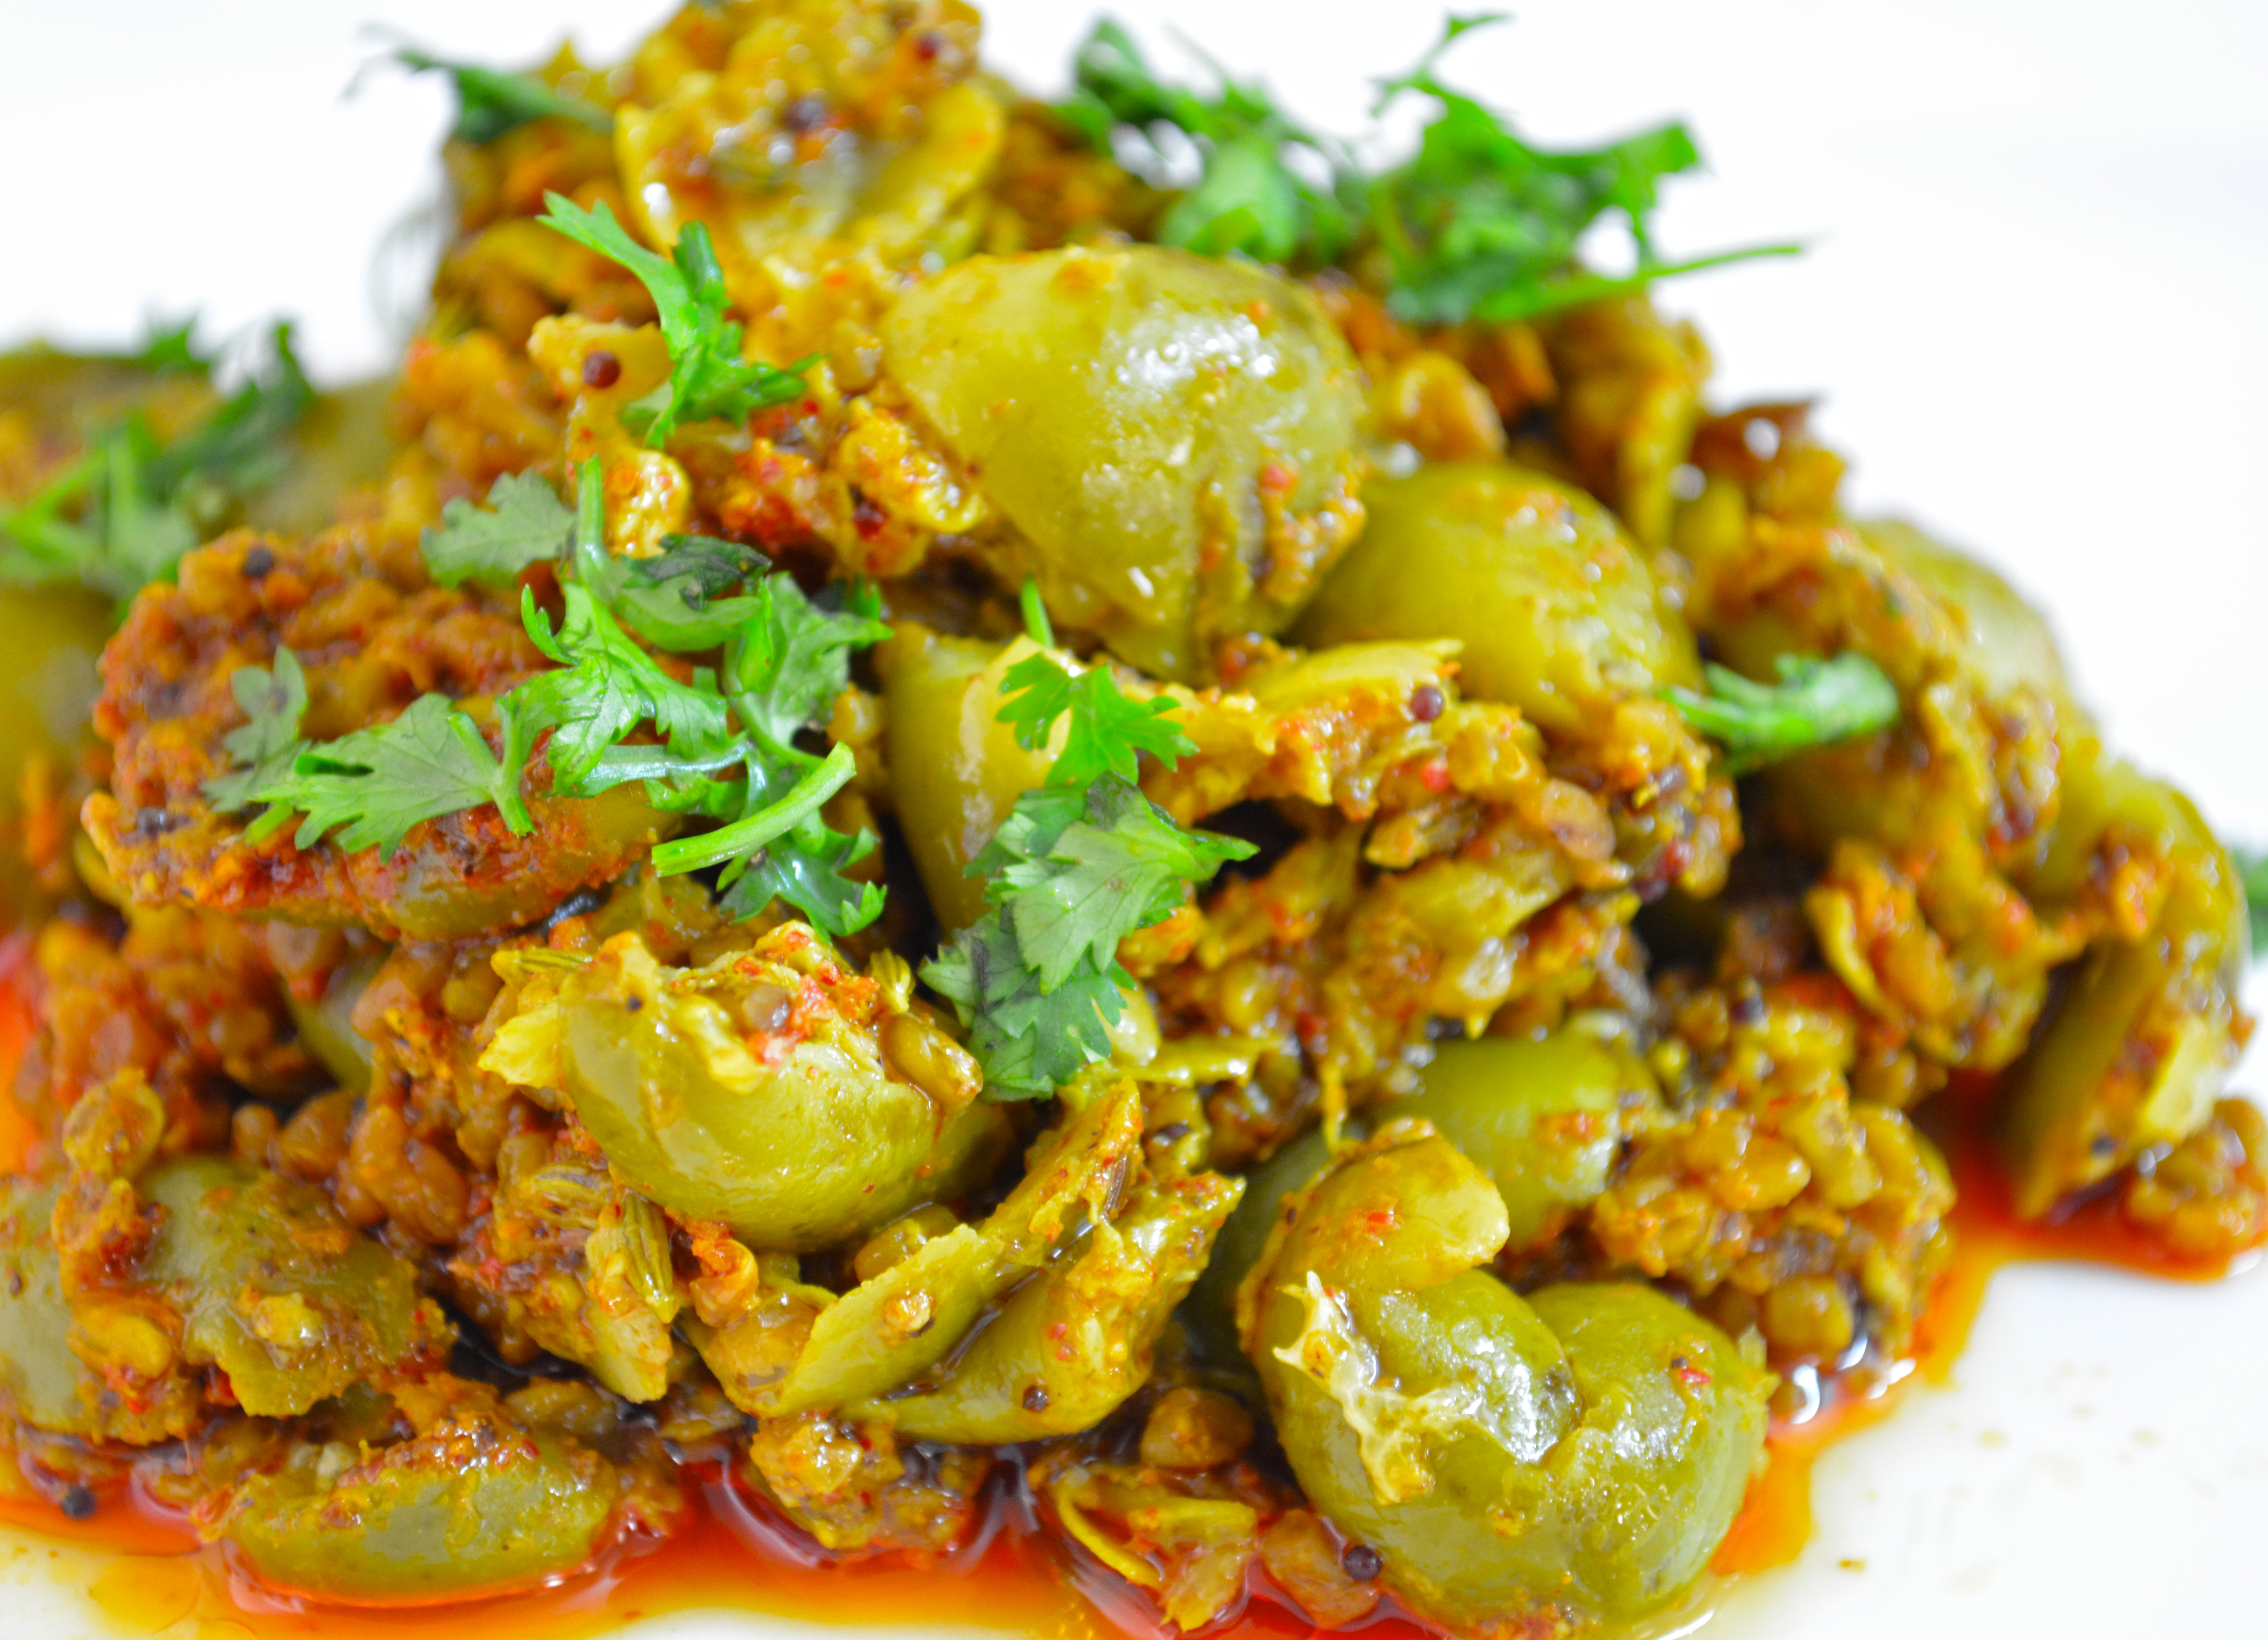 Rajasthani recipes by archanas kitchen bird lime stir fry recipe in hindi forumfinder Images